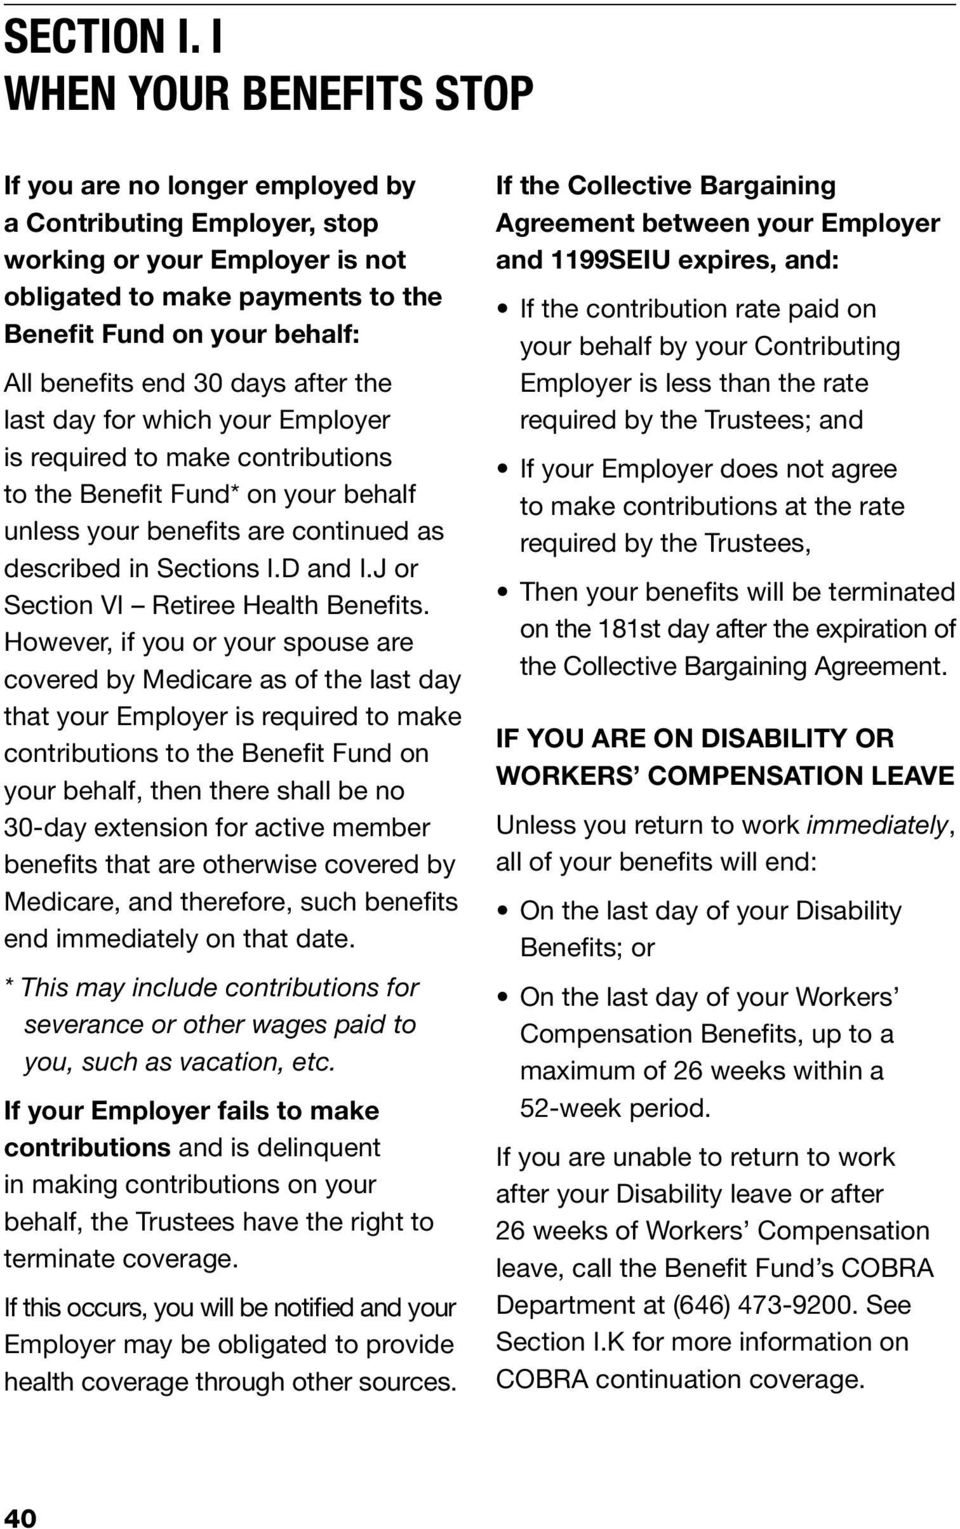 end 30 days after the last day for which your Employer is required to make contributions to the Benefit Fund* on your behalf unless your benefits are continued as described in Sections I.D and I.